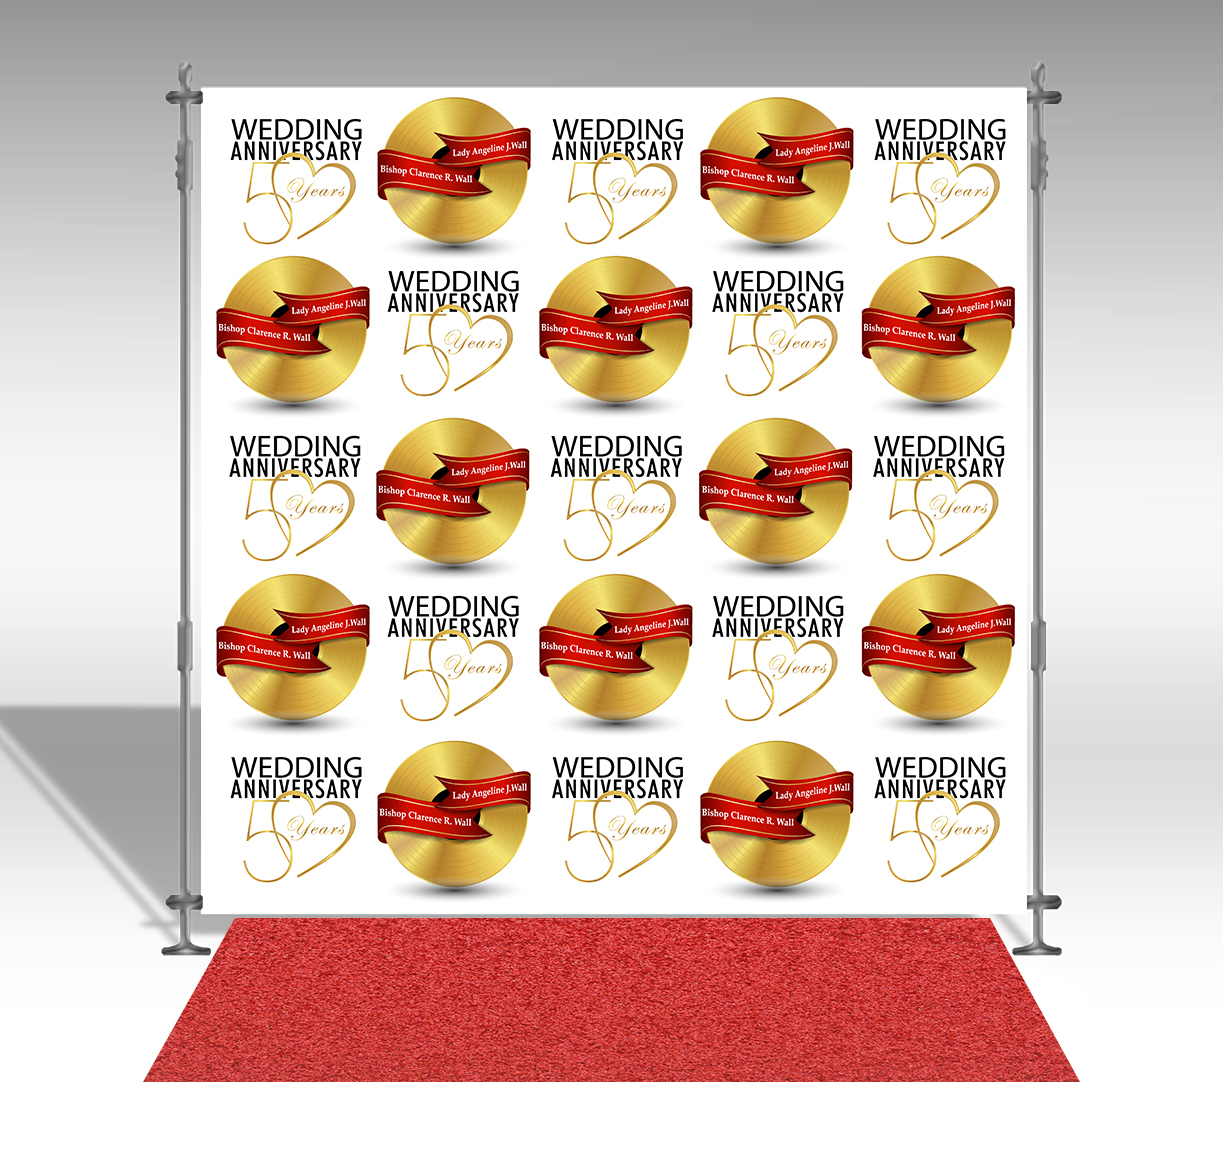 Step & Repeat Backdrop banner